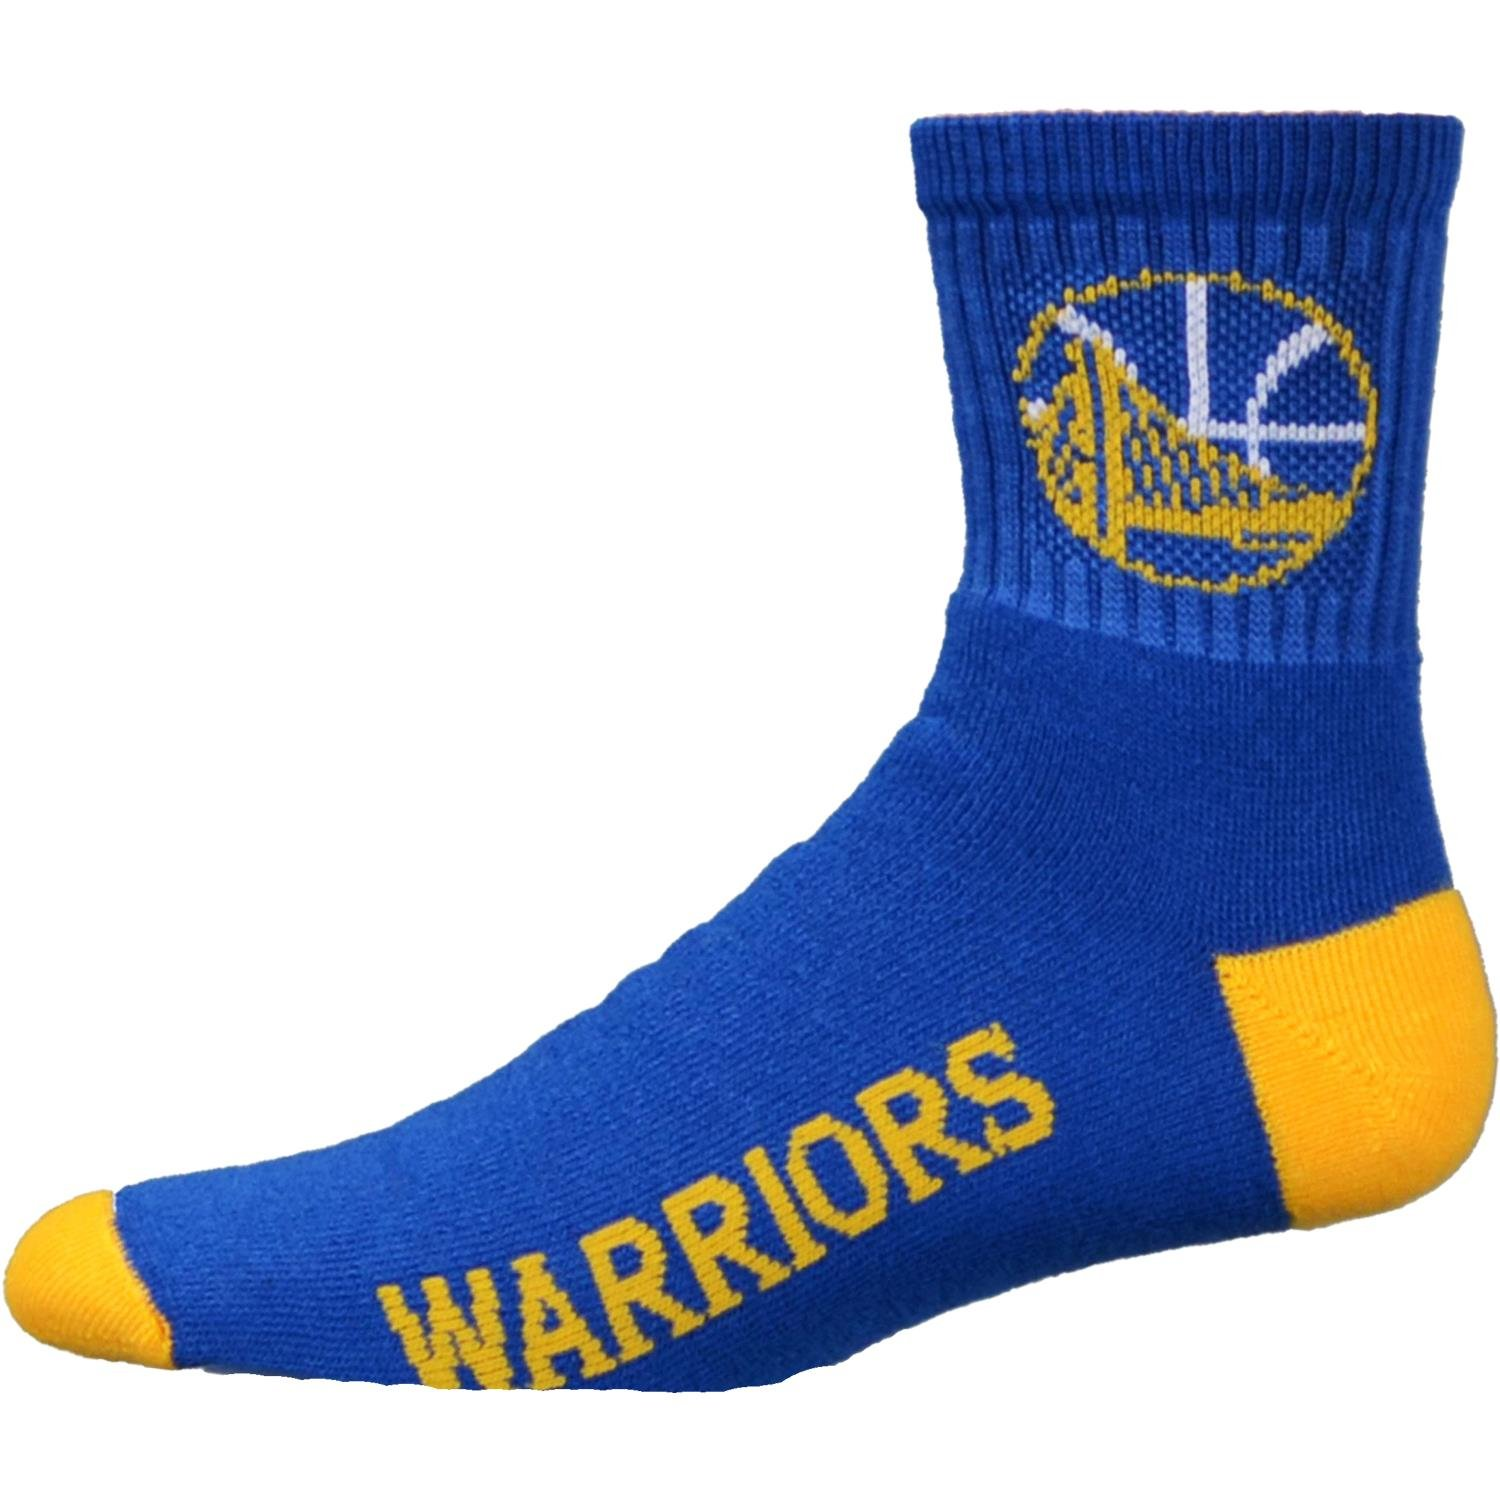 NBA Golden State Warriors Youth Team Color Ankle Socks - Royal Blue/Gold